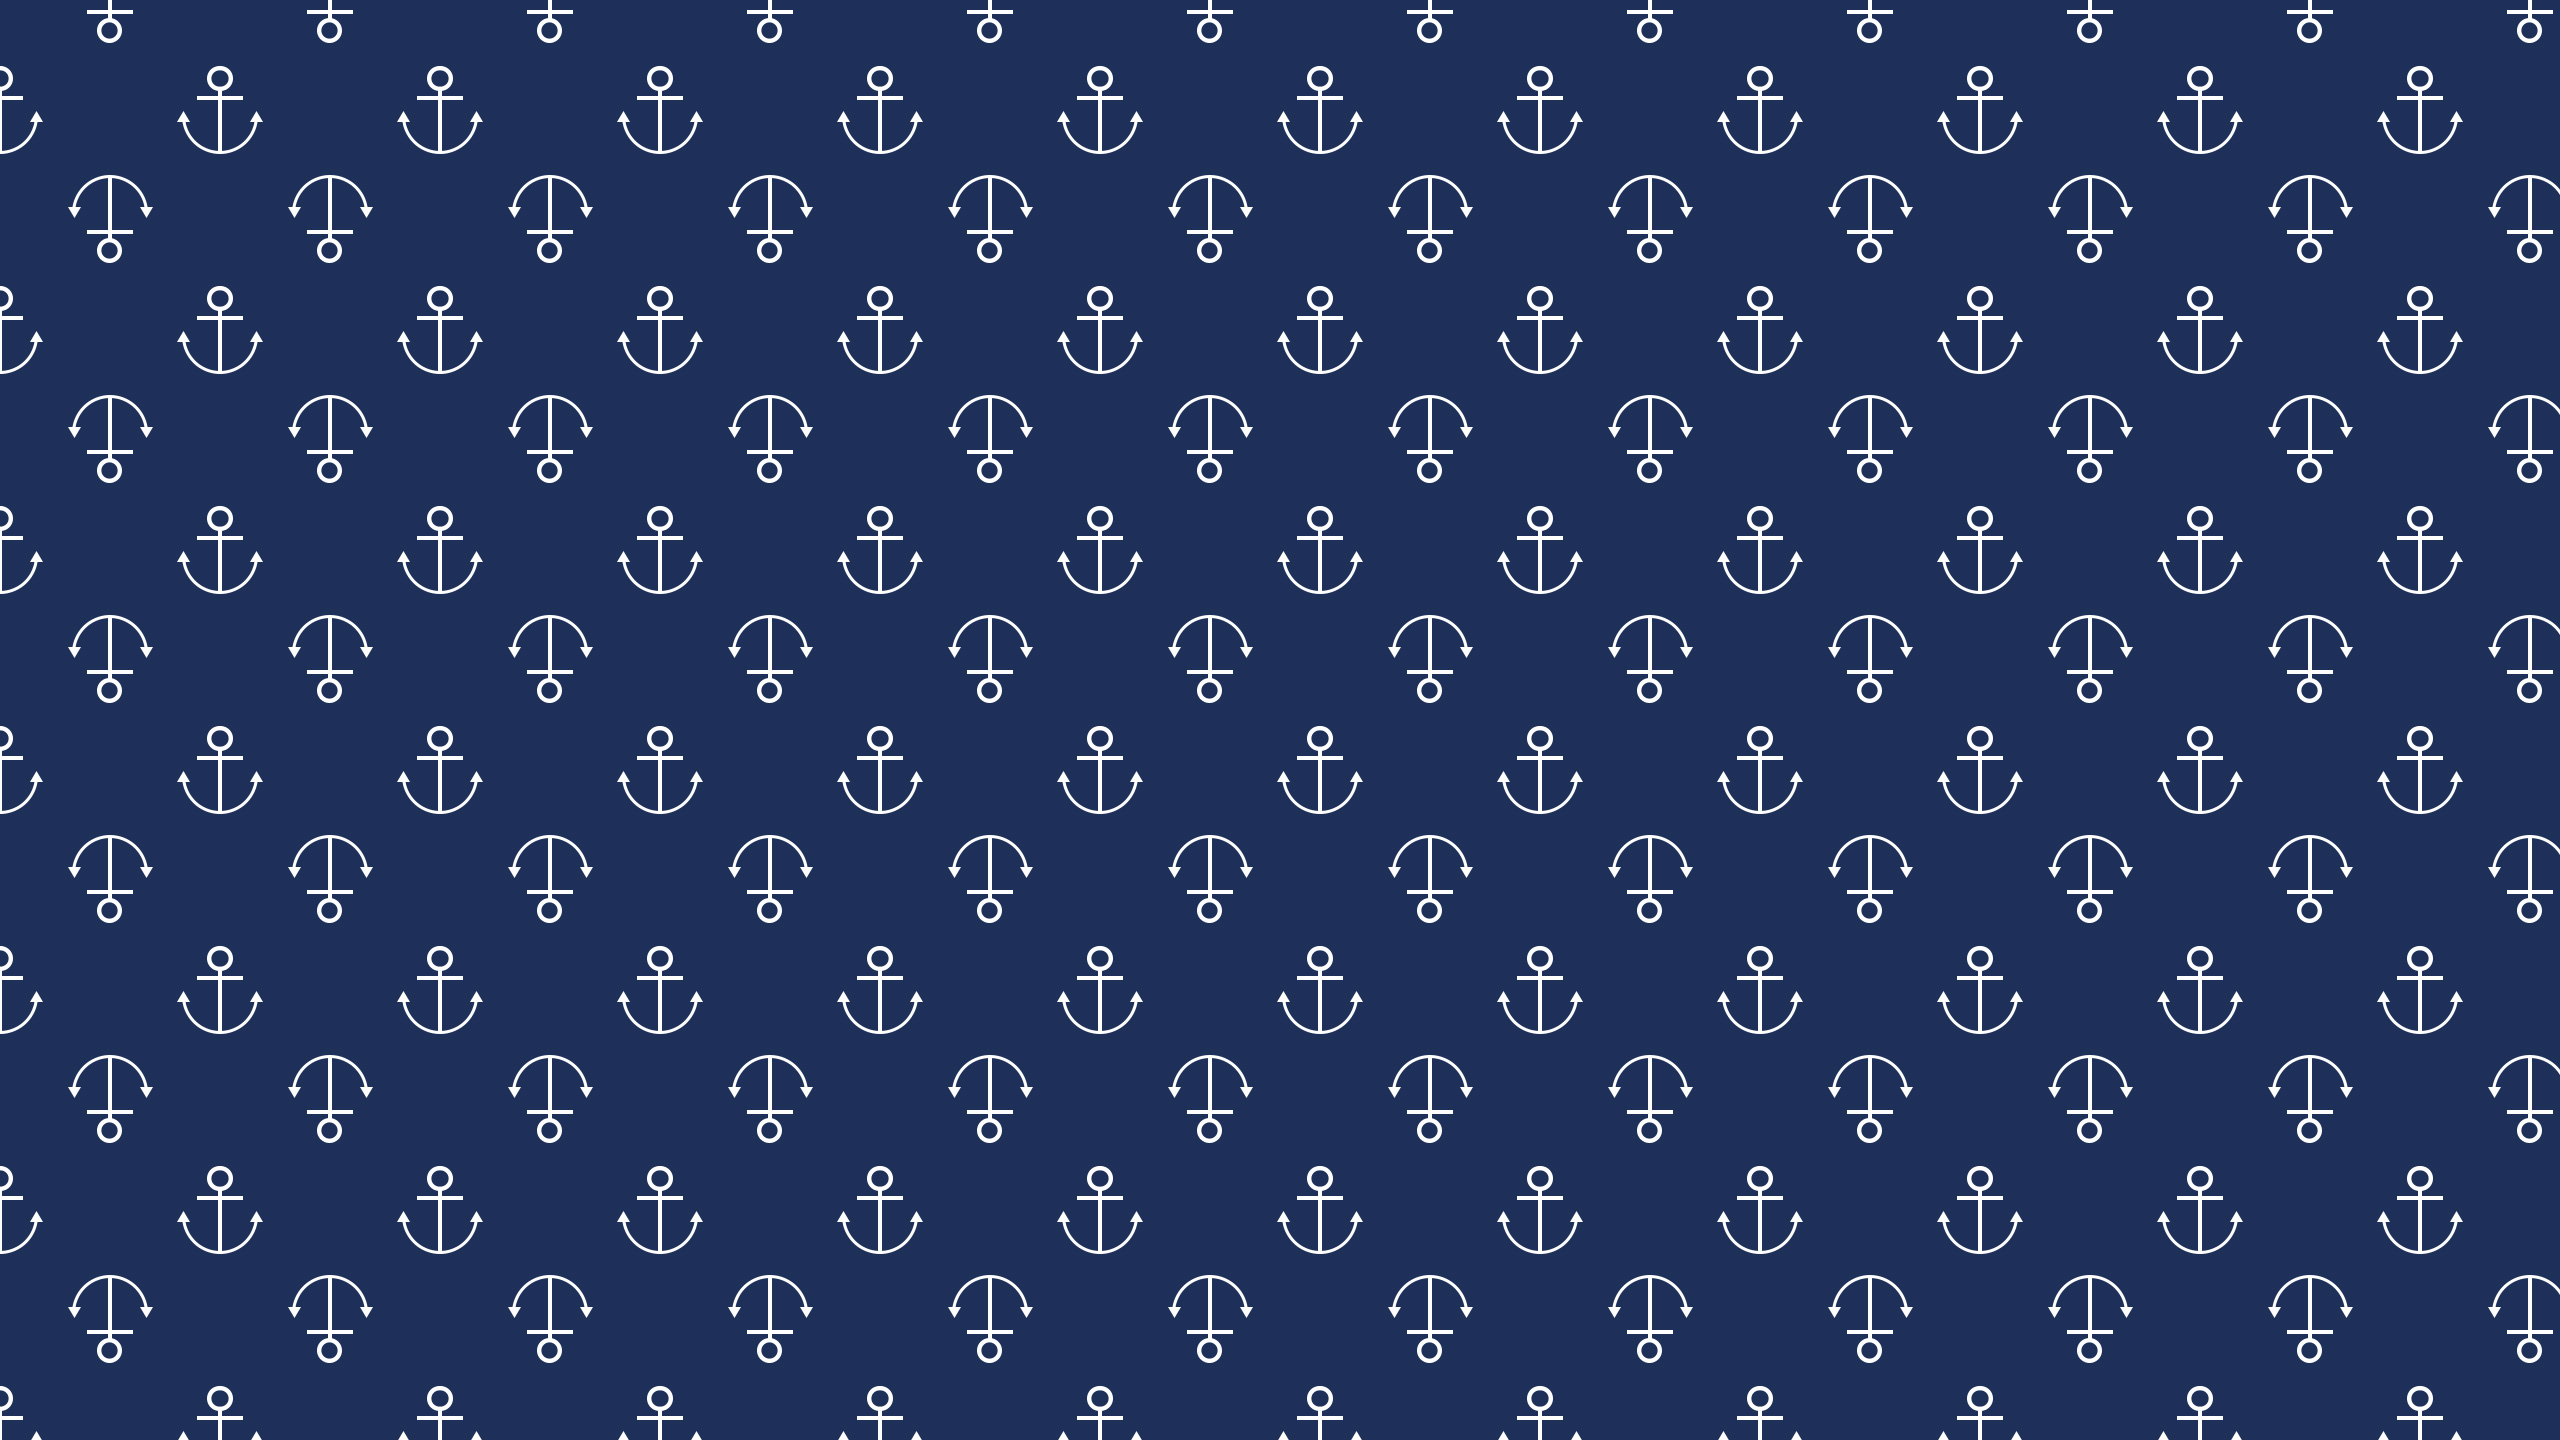 Anchor pattern wallpaper